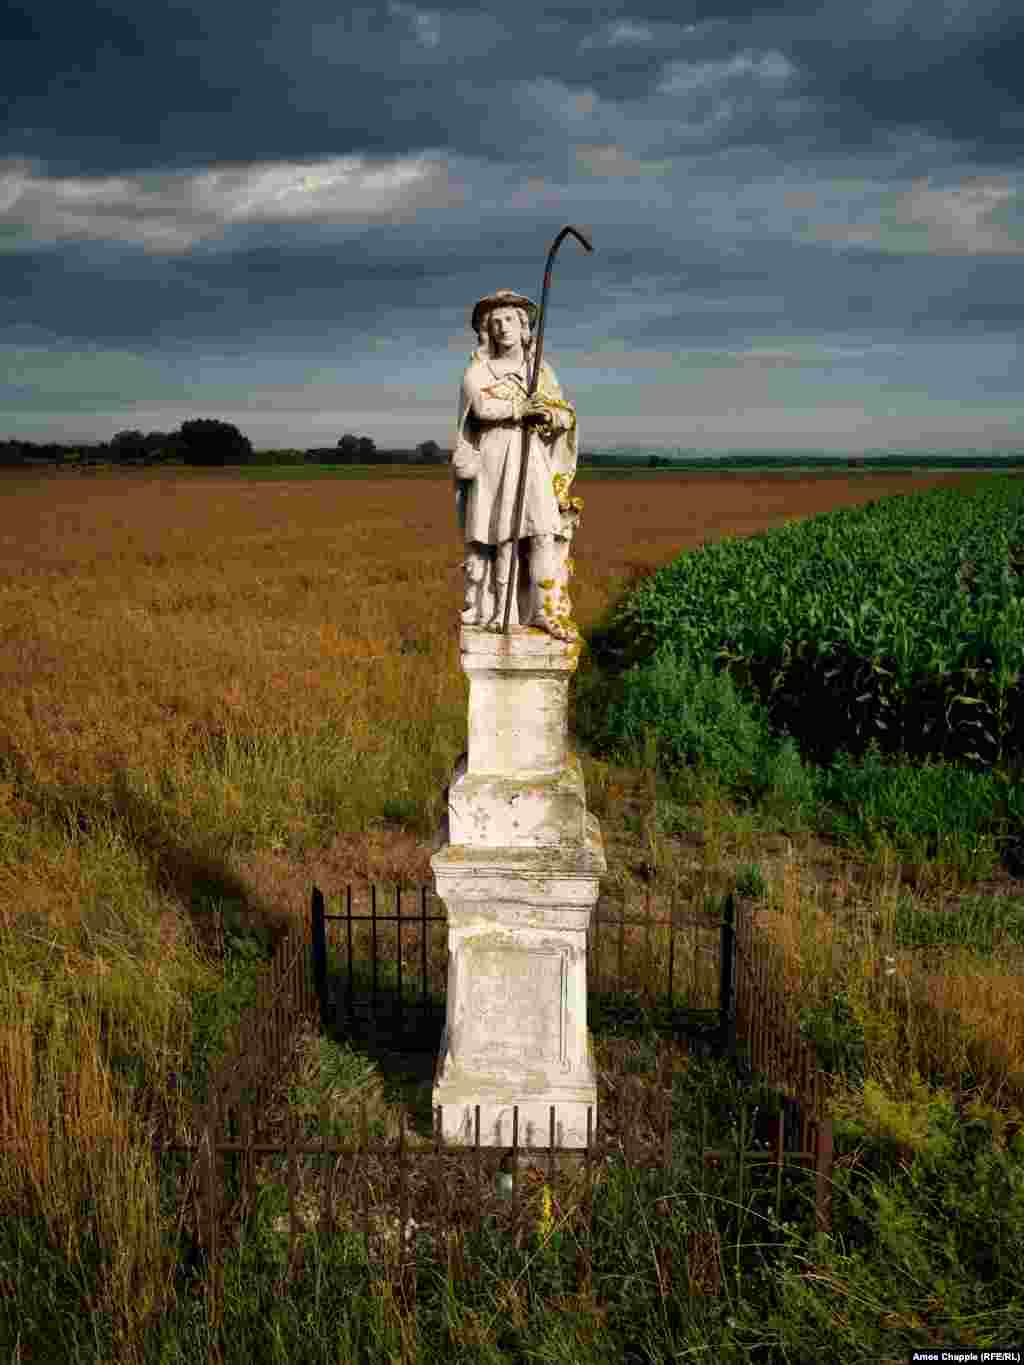 A roadside monument to St. Wendelin, the patron saint of shepherds, stands near Sumeg in western Hungary.